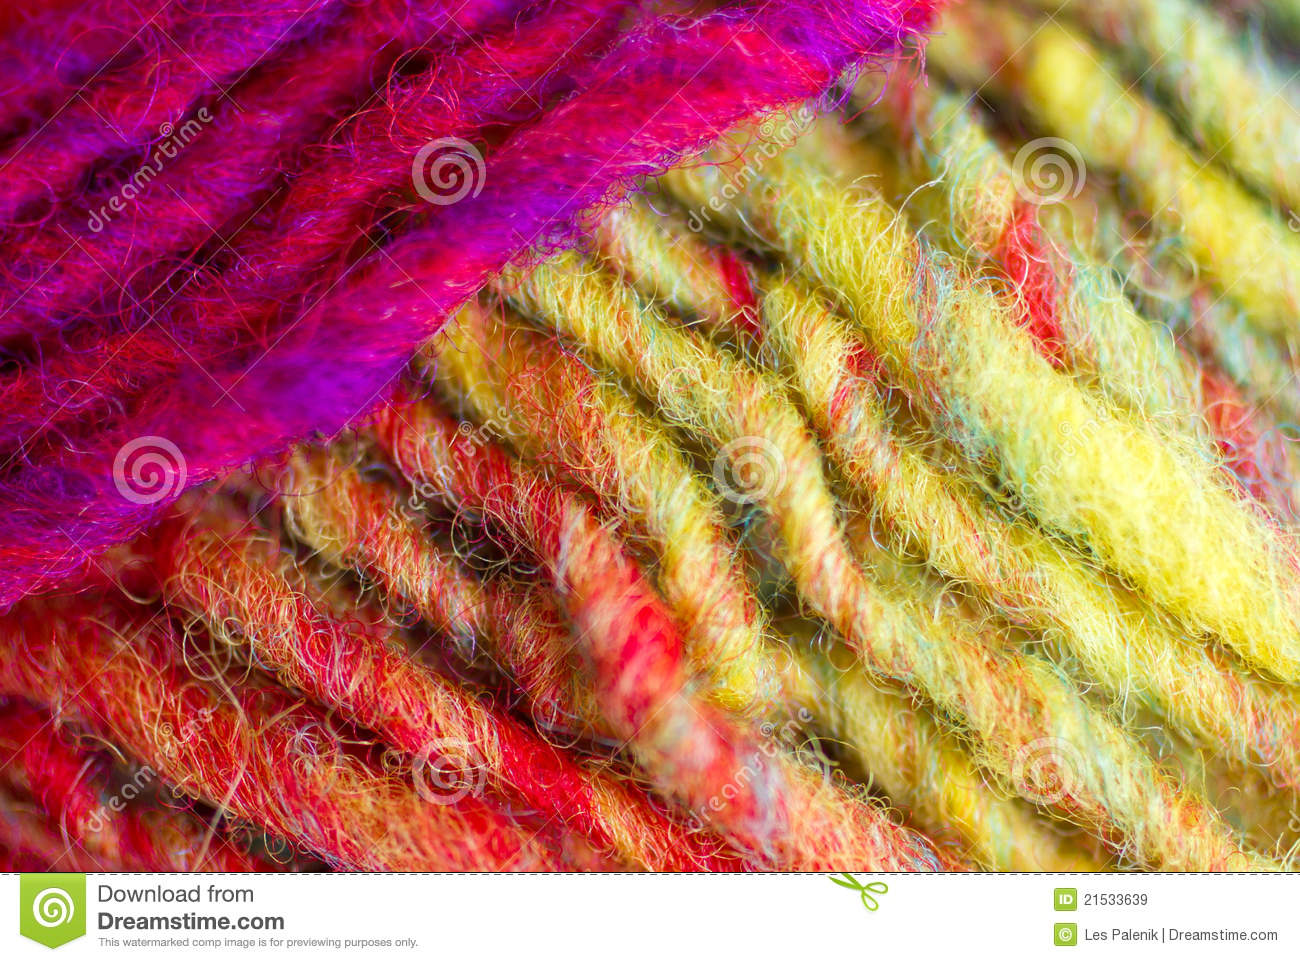 Colourful Knitting Patterns : Colorful Knitting Yarn Pattern / Background Royalty Free Stock Images - Image...